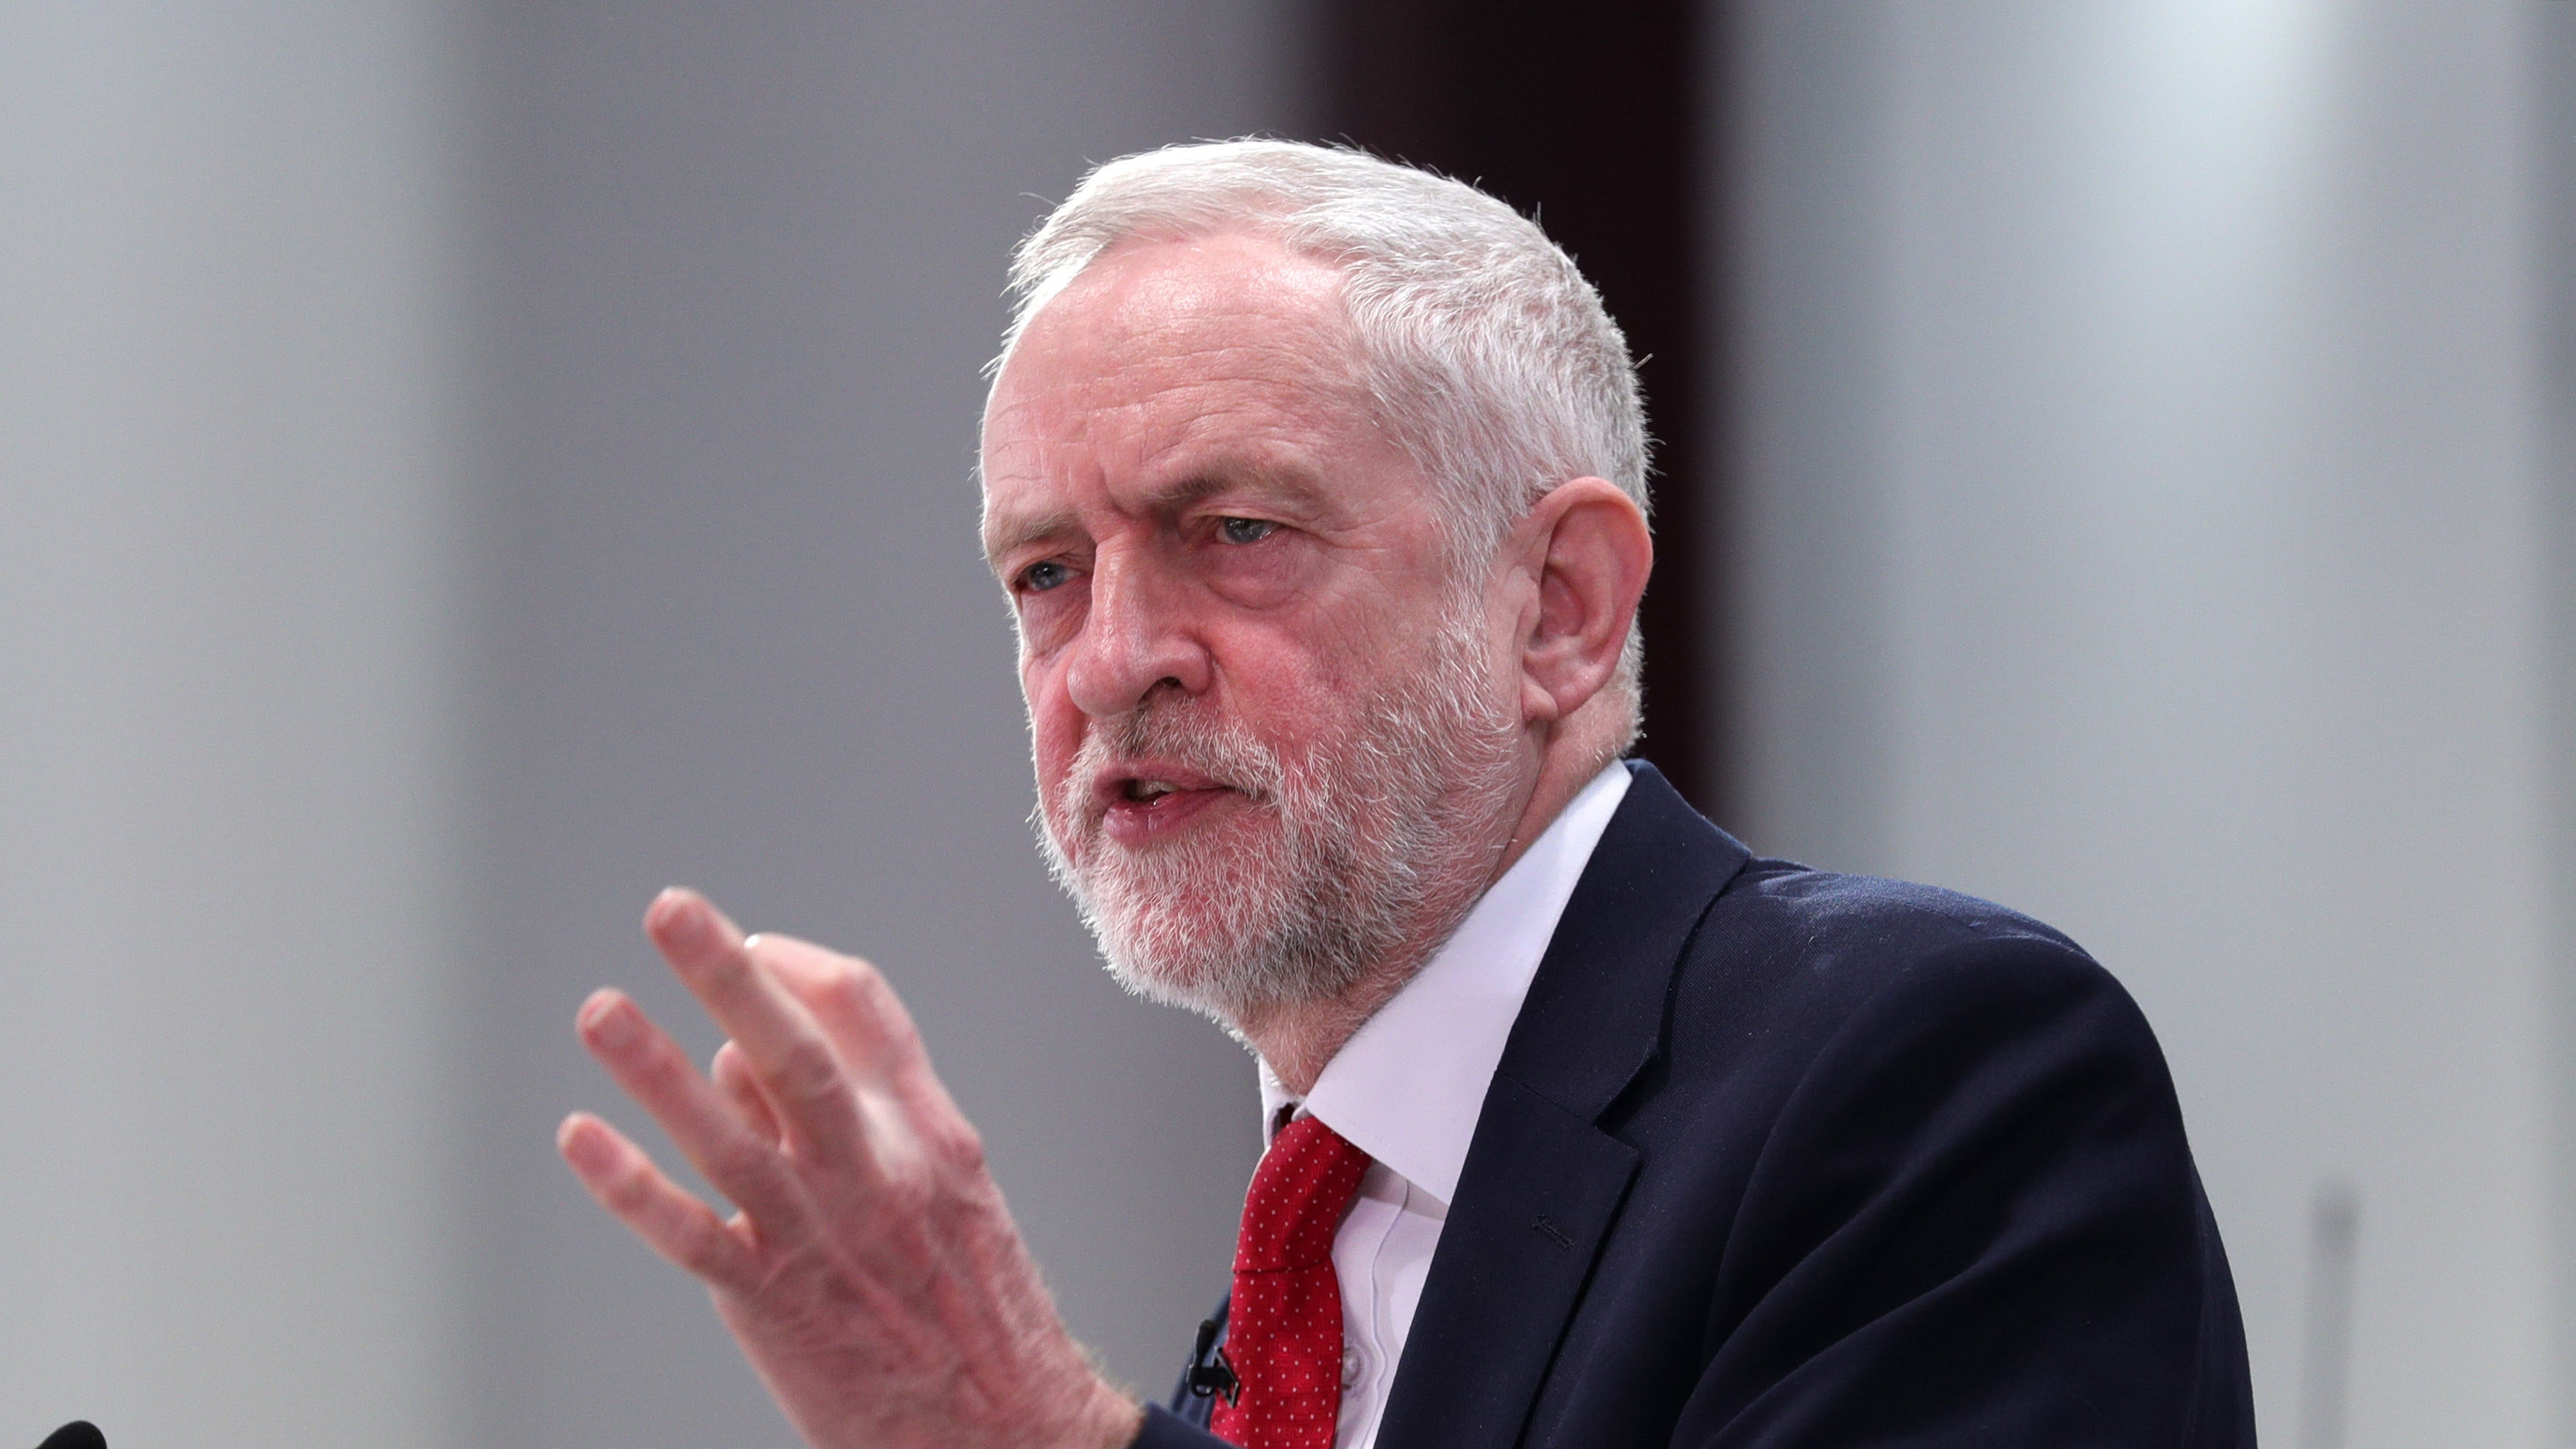 Scottish Labour conference: Row over single market ahead of Jeremy Corbyn speech